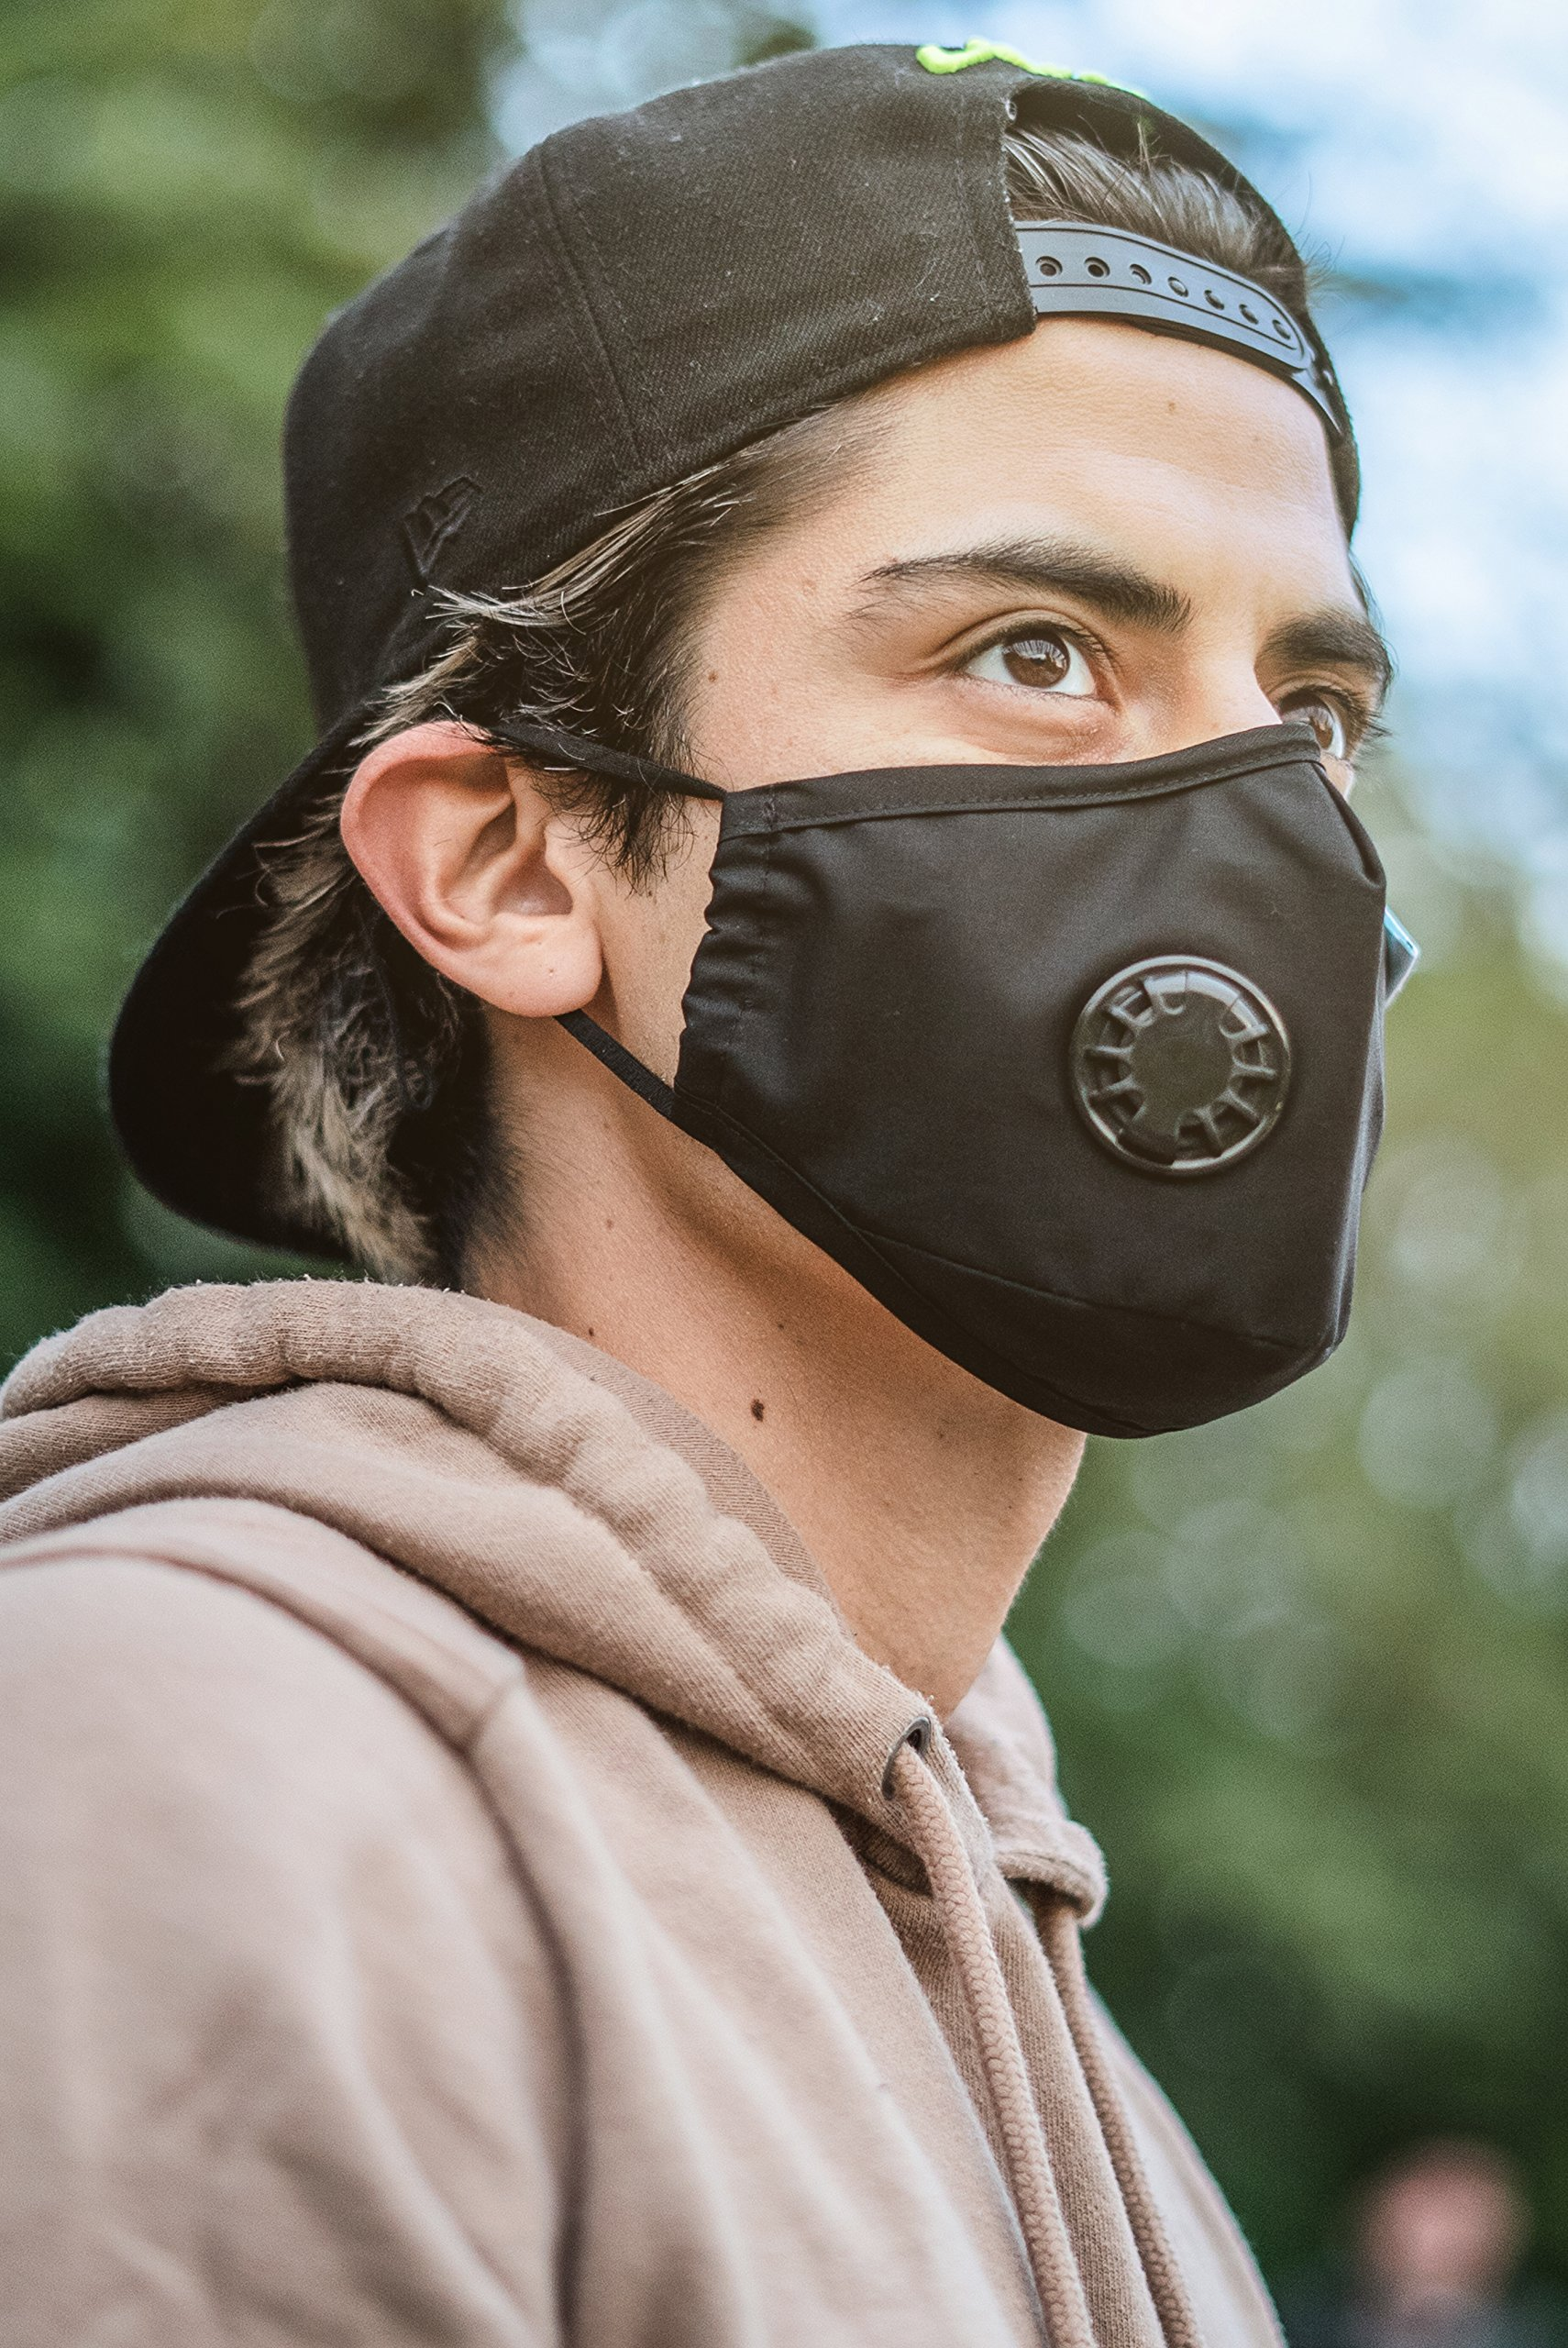 Easy Breathe Pollution Mask Ultra Soft Cotton Adjustable & Reusable With Four N99 Mask Replacement Filters | Anti Pollution N99 Filter Respirator Mouth & Face Mask For Men & Women by Keklle (Image #5)